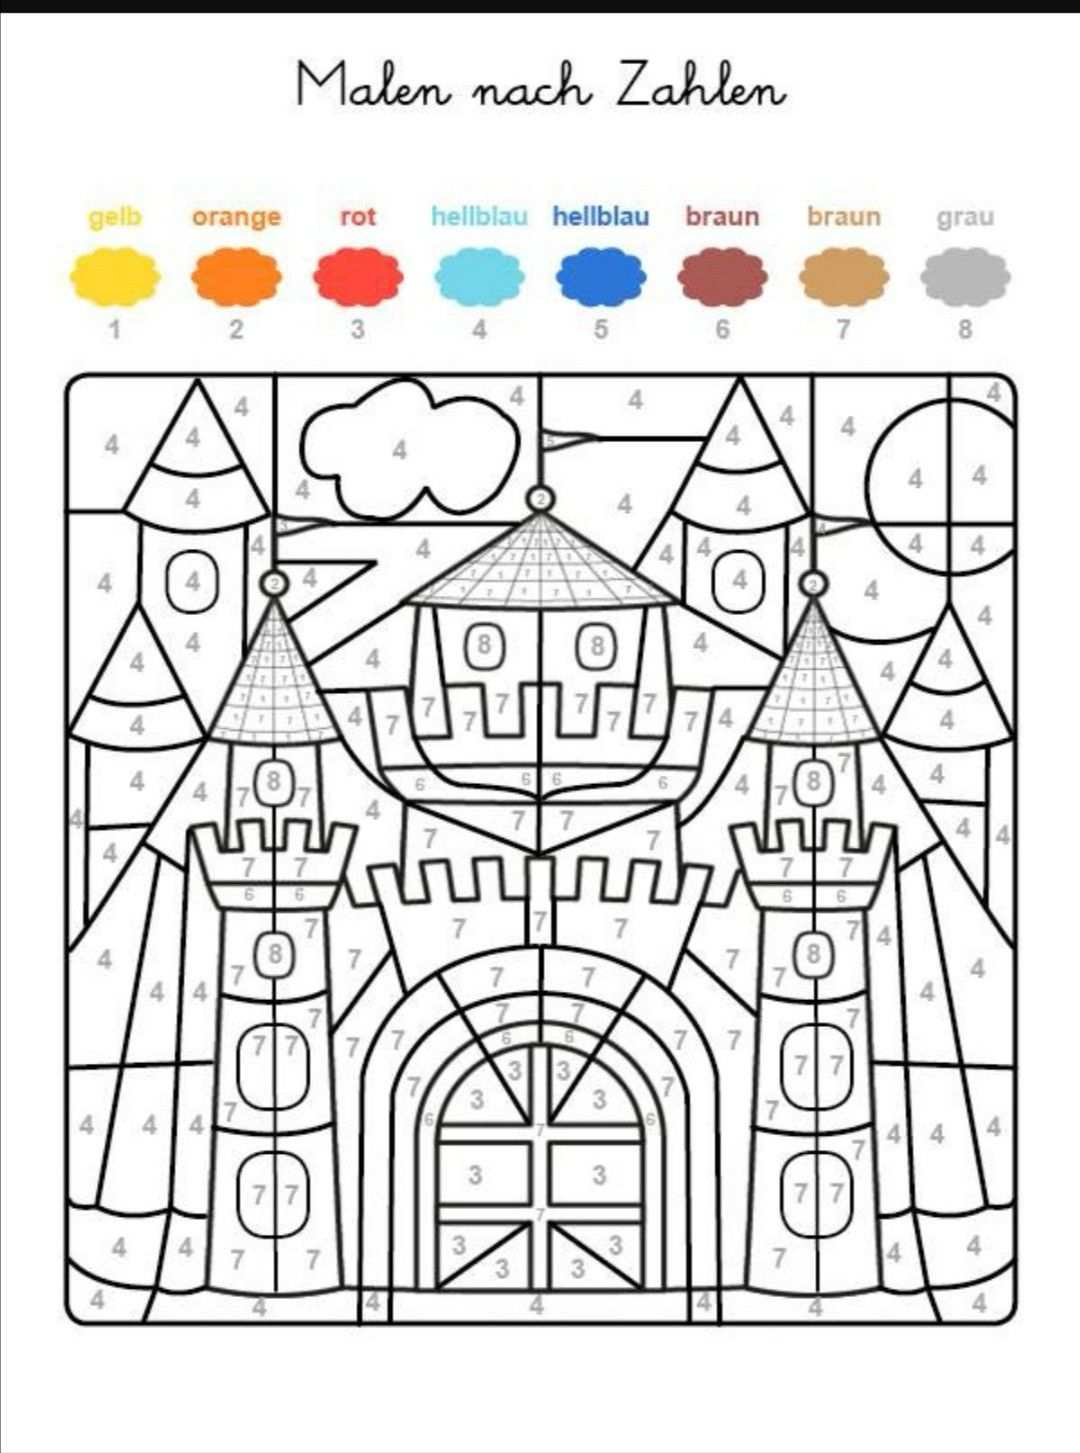 Pin By Jasna Joost On Schuki In 2020 Coloring Pages Free Coloring Pages Color By Numbers